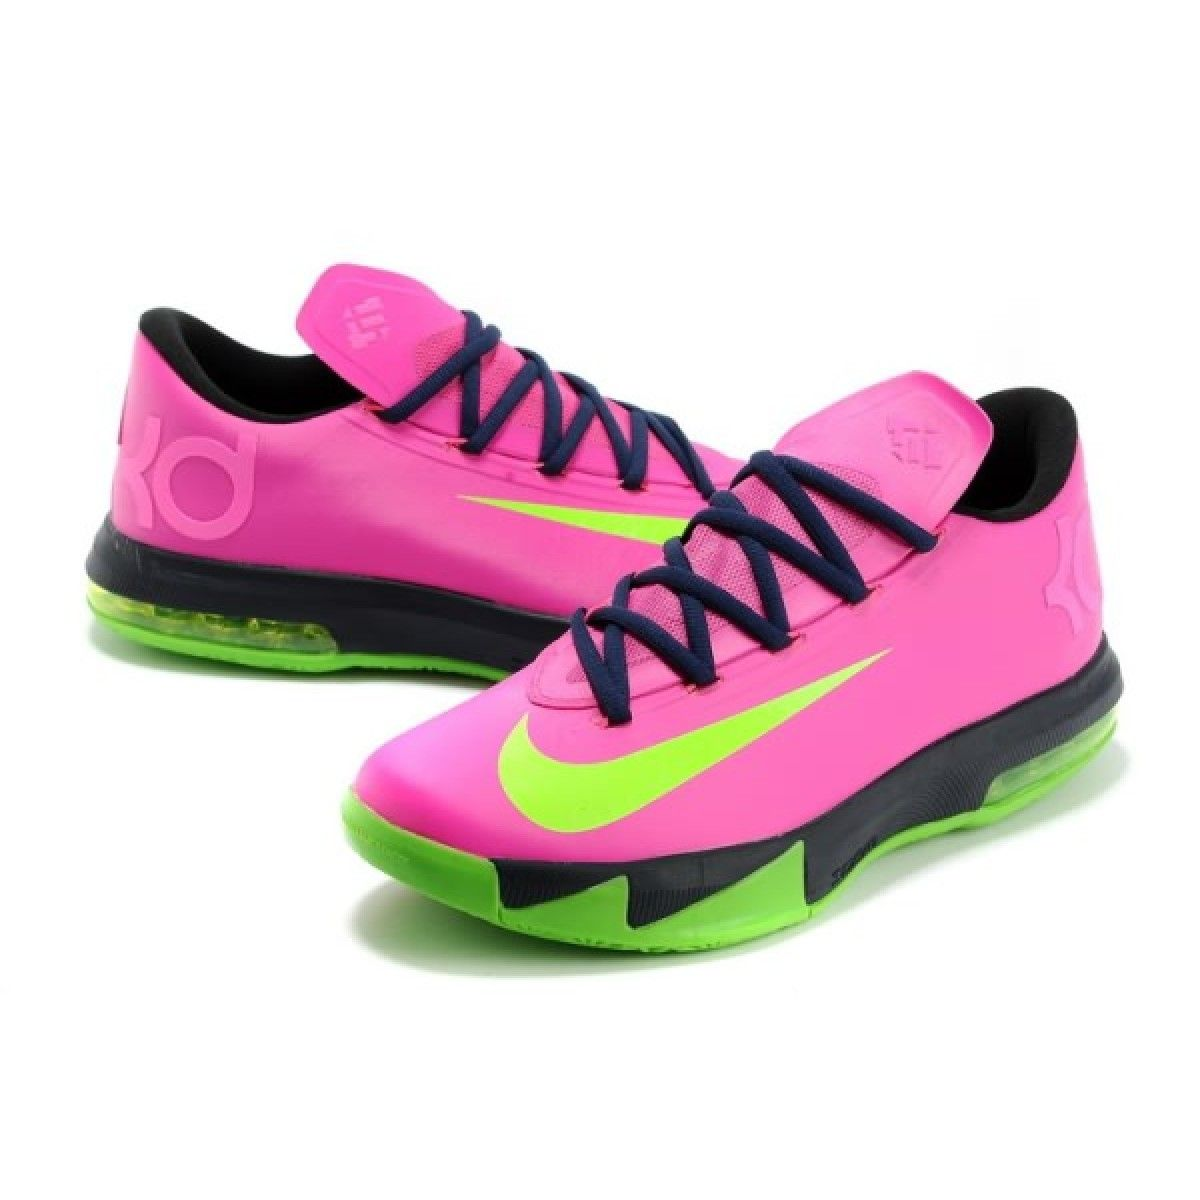 new style 5f757 61084 Nike Zoom Kevin Durant s KD VI N7 Pink Black Green Basketball ...    Projects to Try   Pinterest   Nike zoom, Pink black and Nike shoe